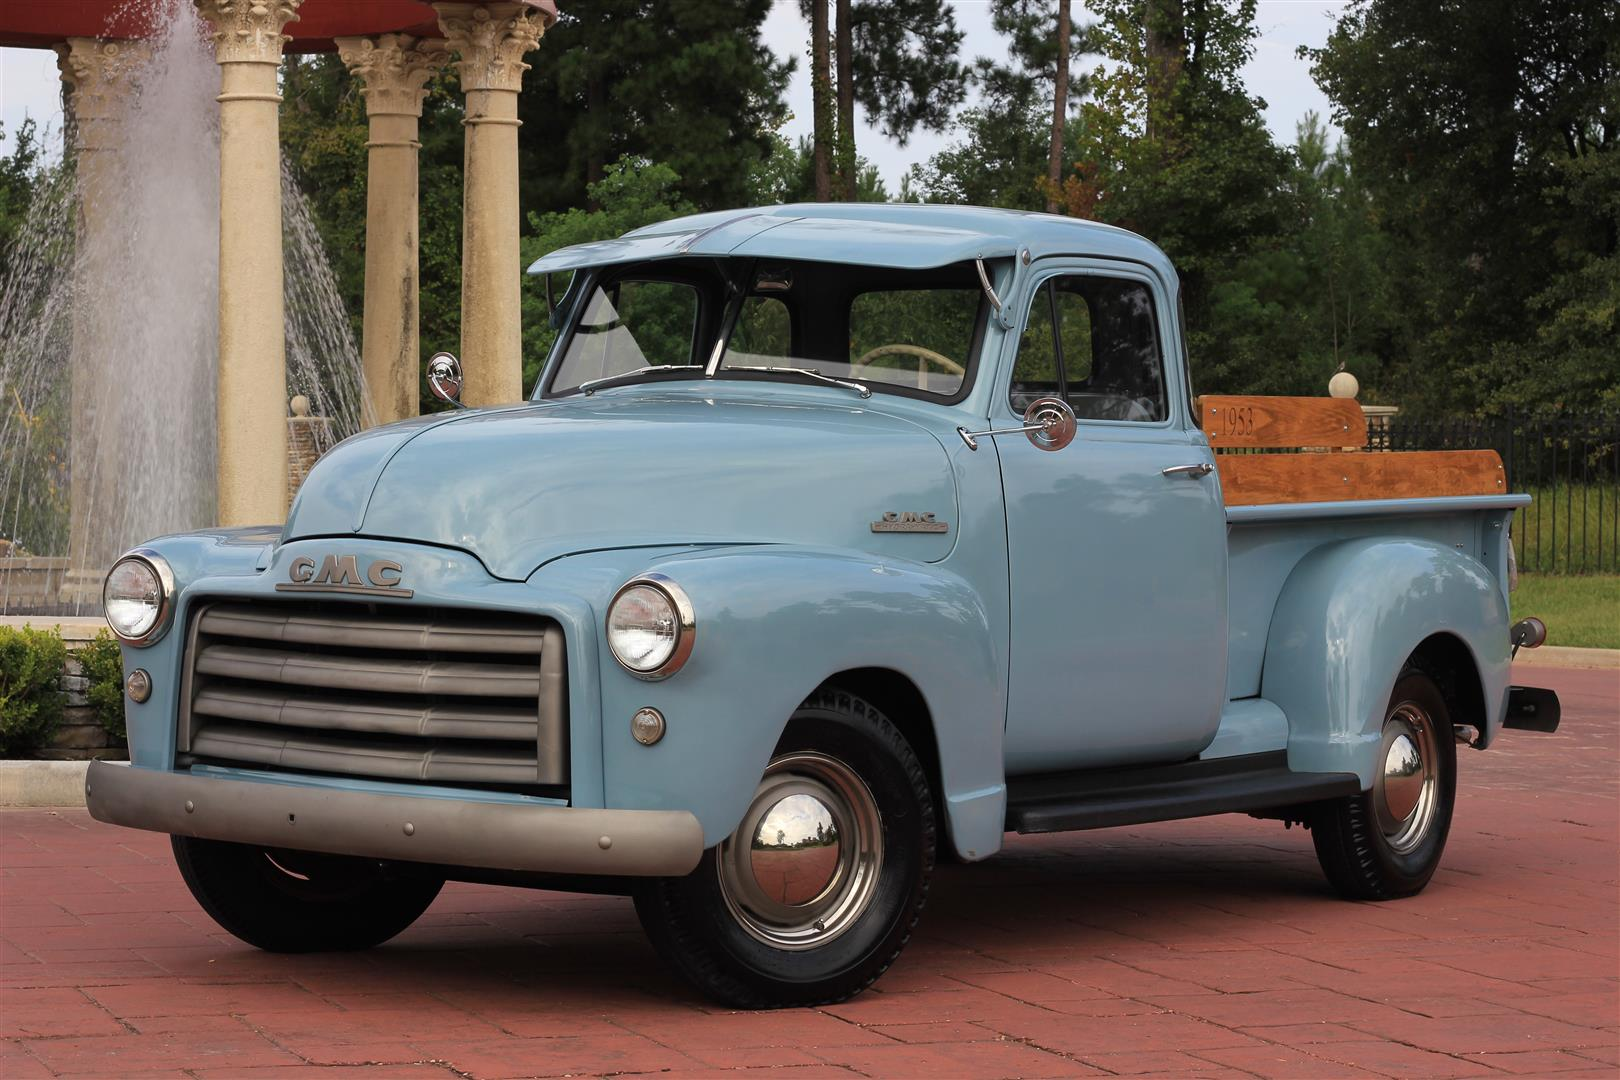 1953 GMC Series 100-22 – TEXAS TRUCKS & CLASSICS